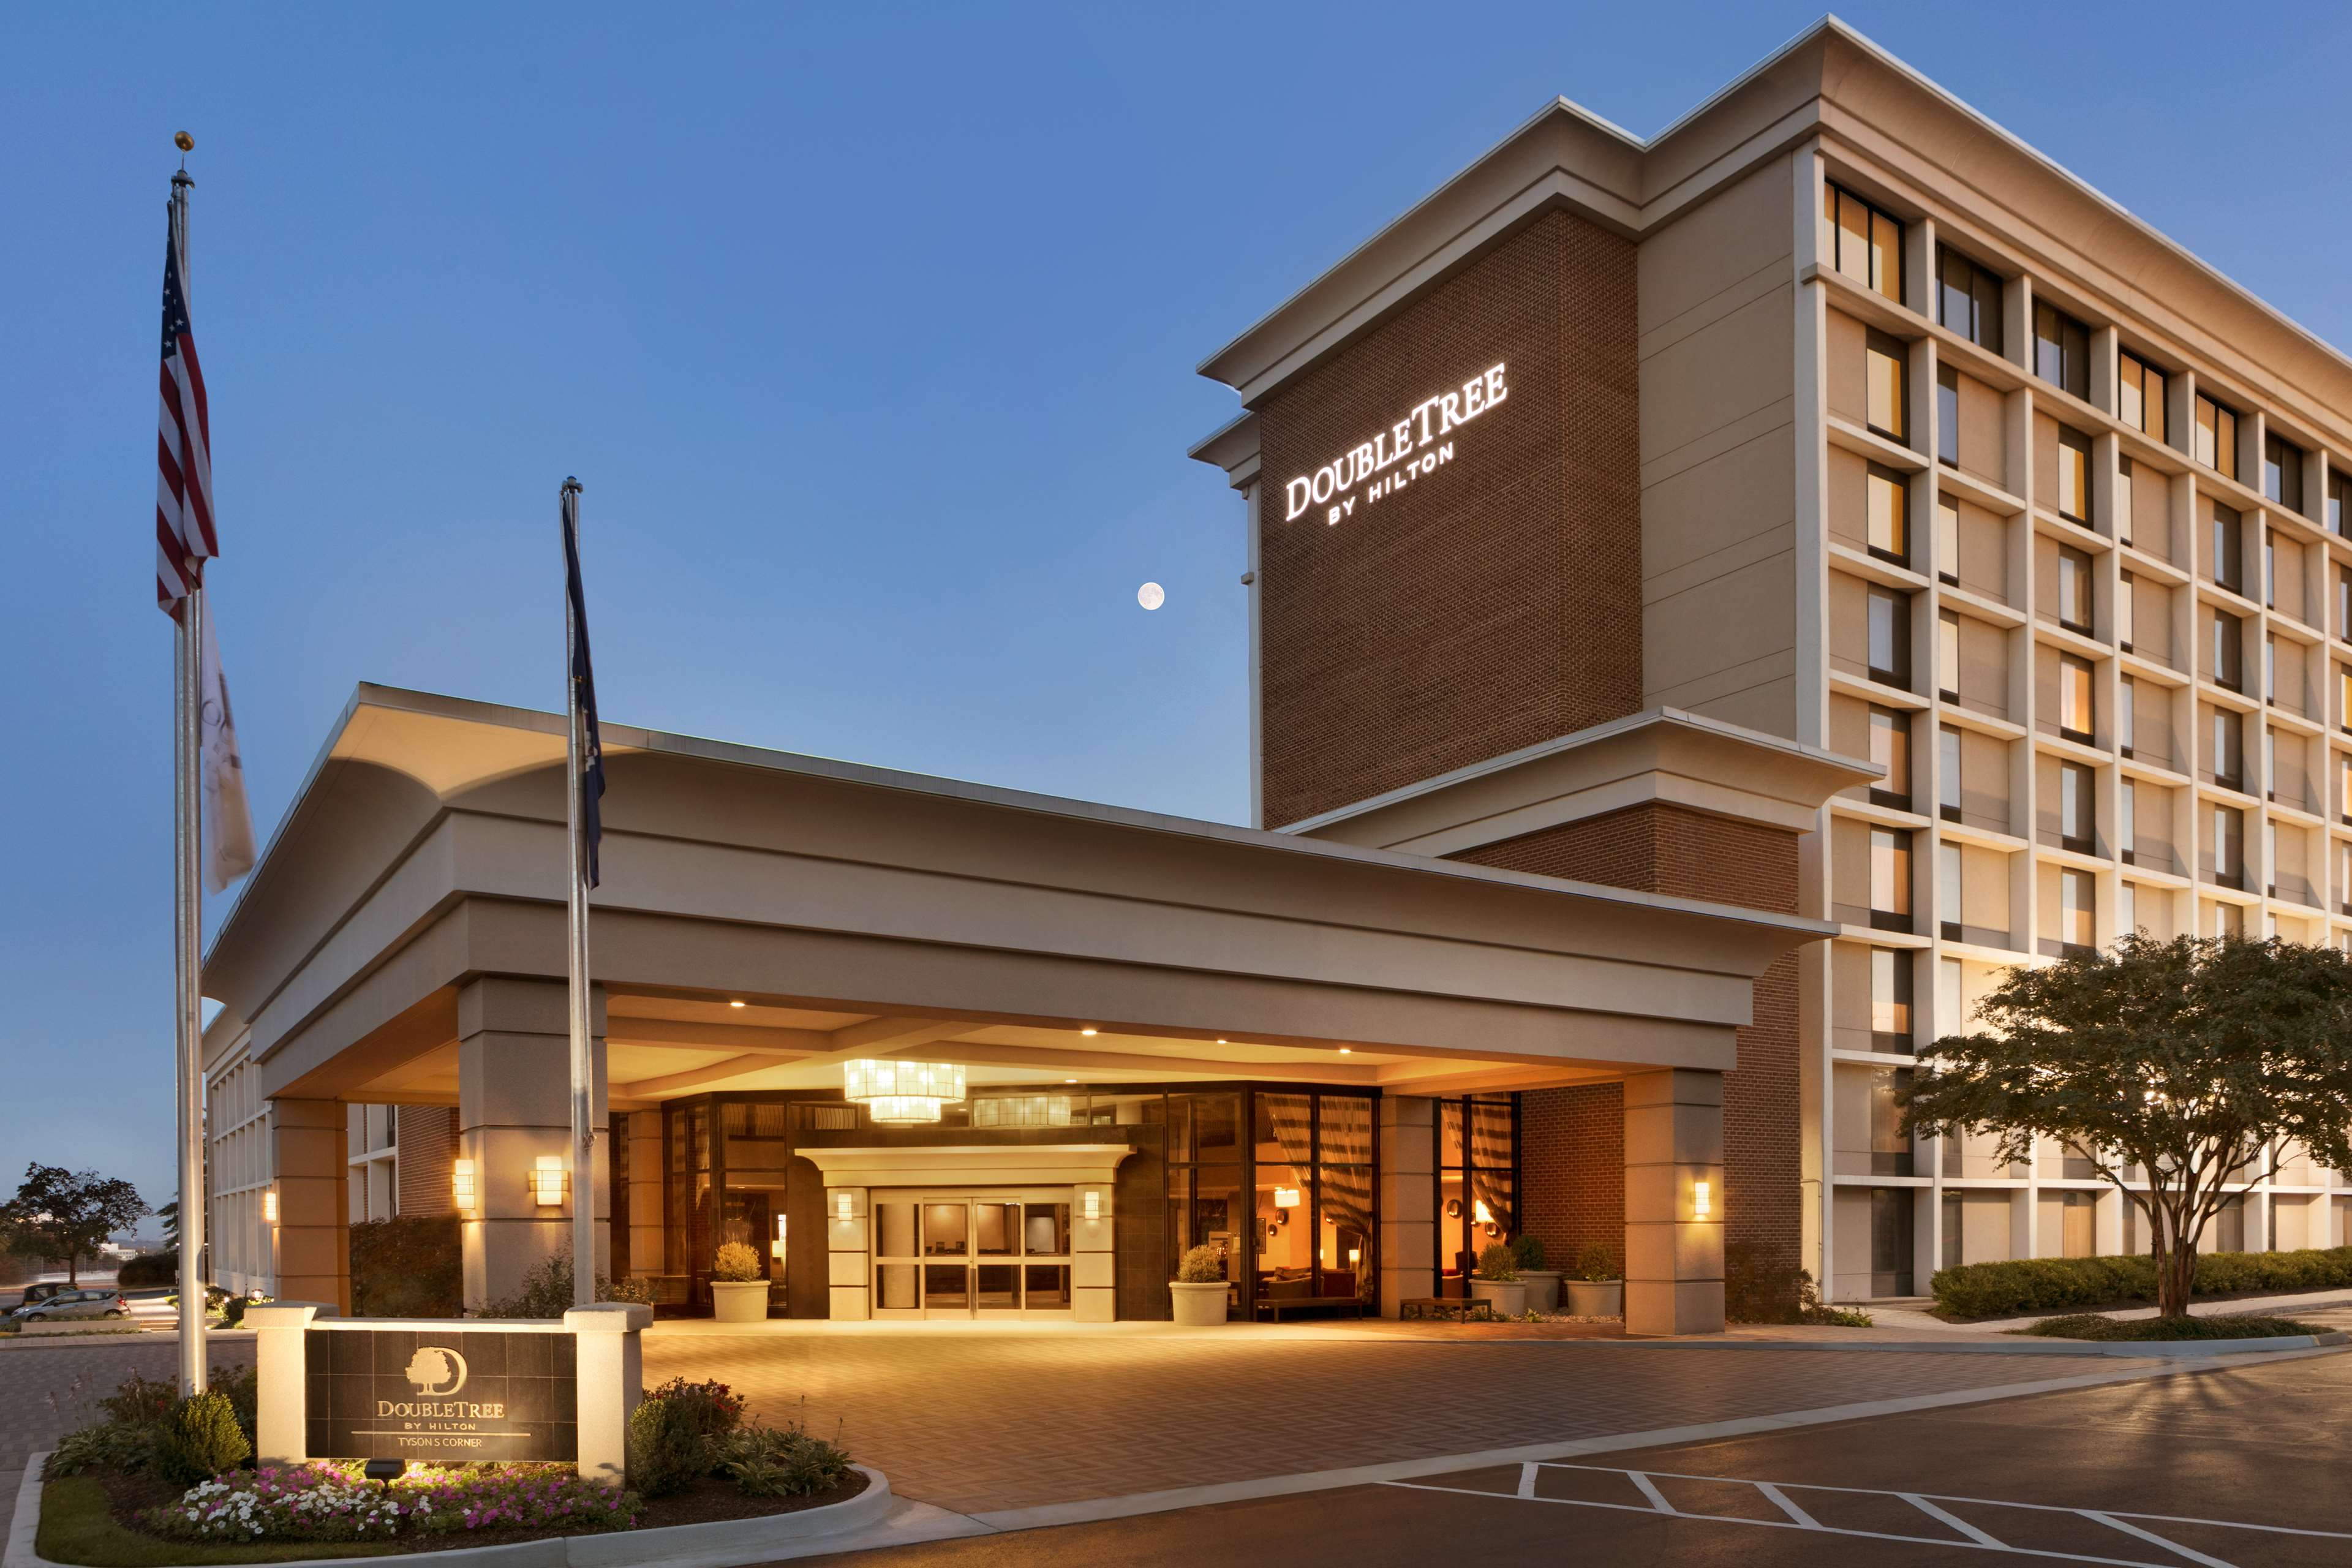 DoubleTree by Hilton McLean Tysons image 0